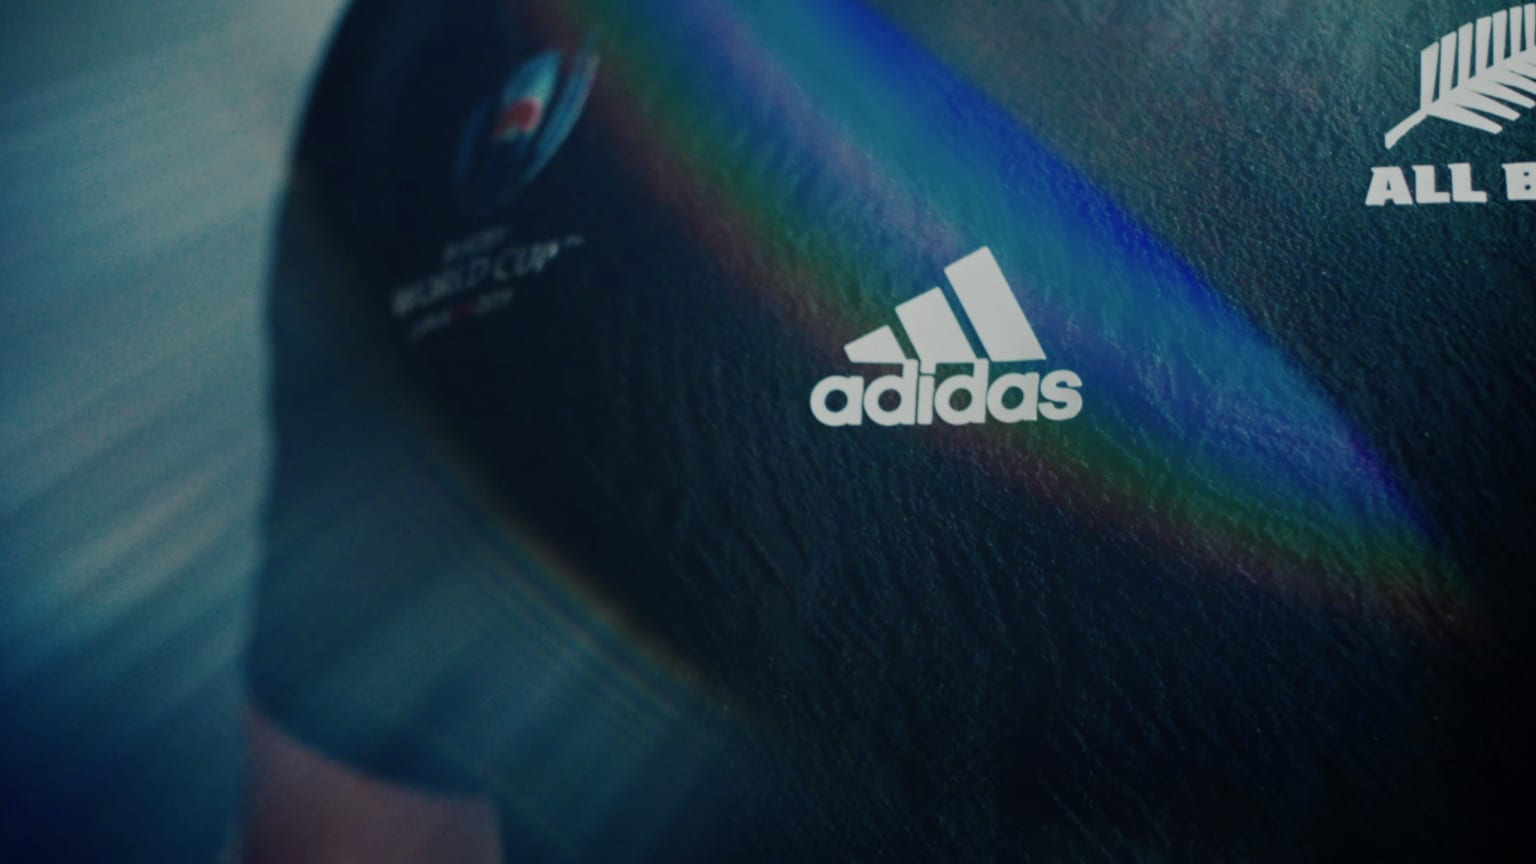 Adidas x Y3 | All Blacks 2019 World Cup Rugby Jersey Launch